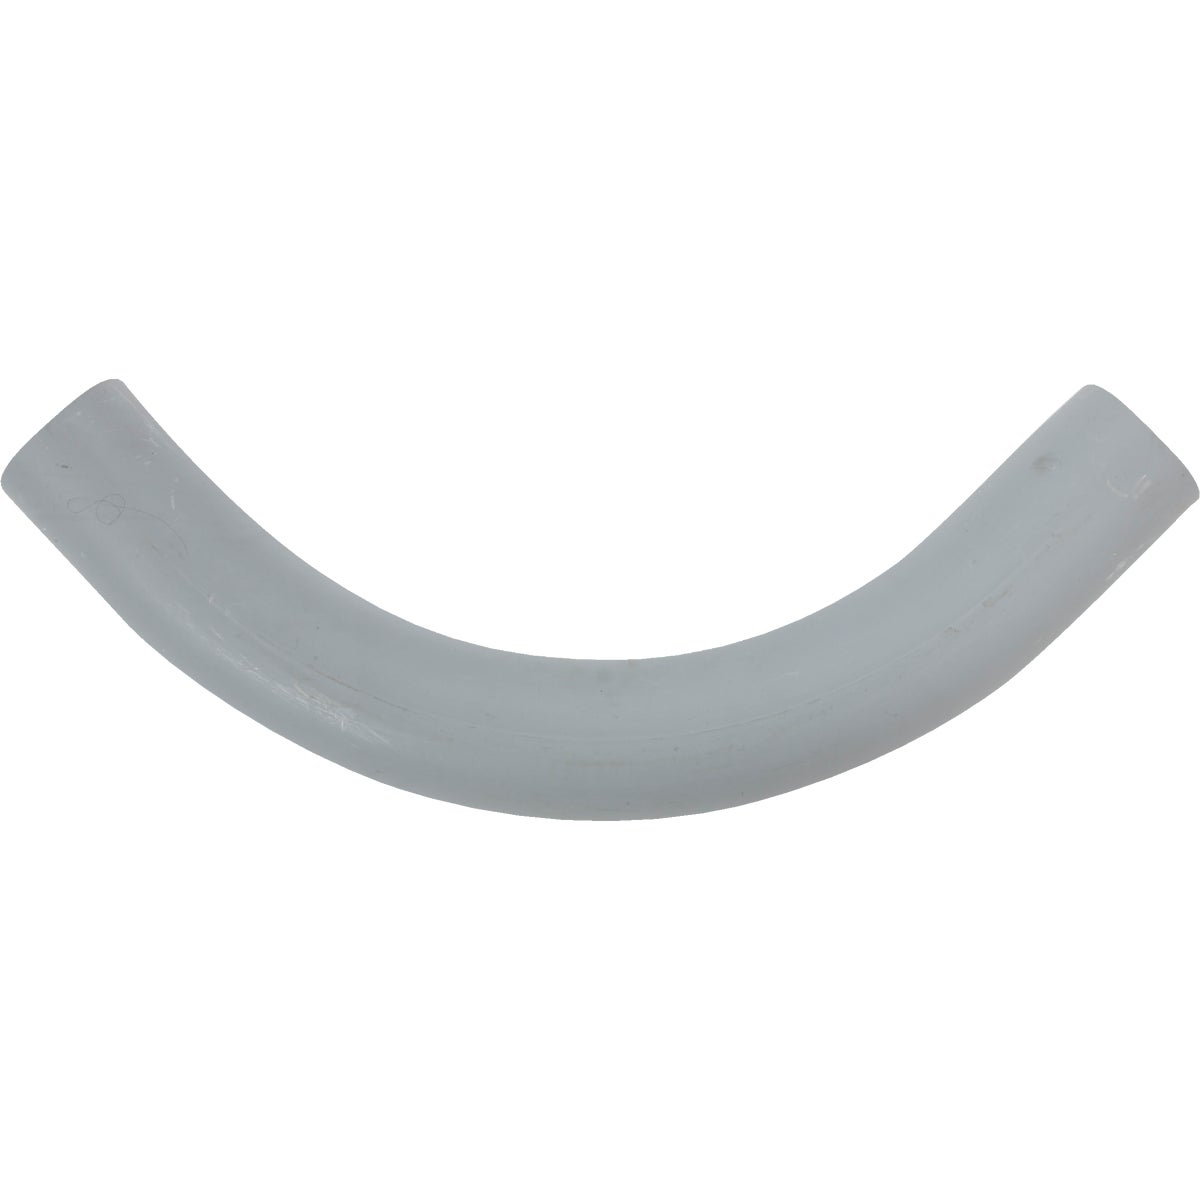 "3"" PVC ELBOW - UA9ALCAR by Thomas & Betts"